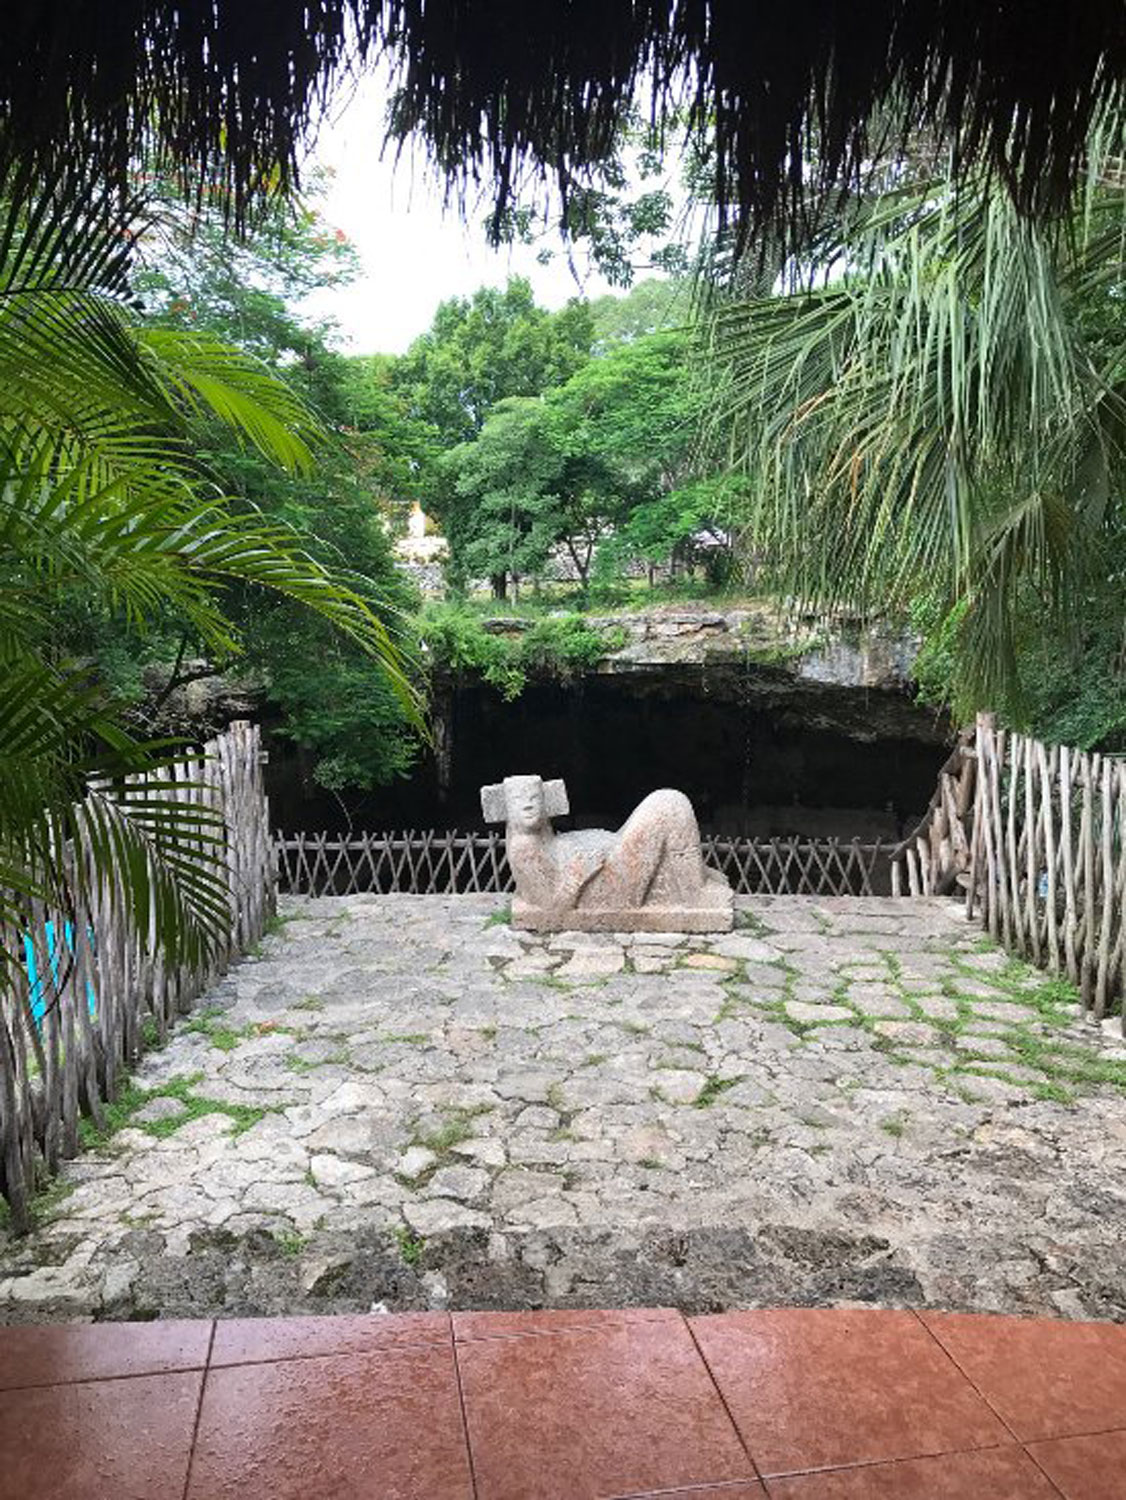 Chacmool guards the cenote. Right: Valladolid's coat of arms, Zací (white hawk).